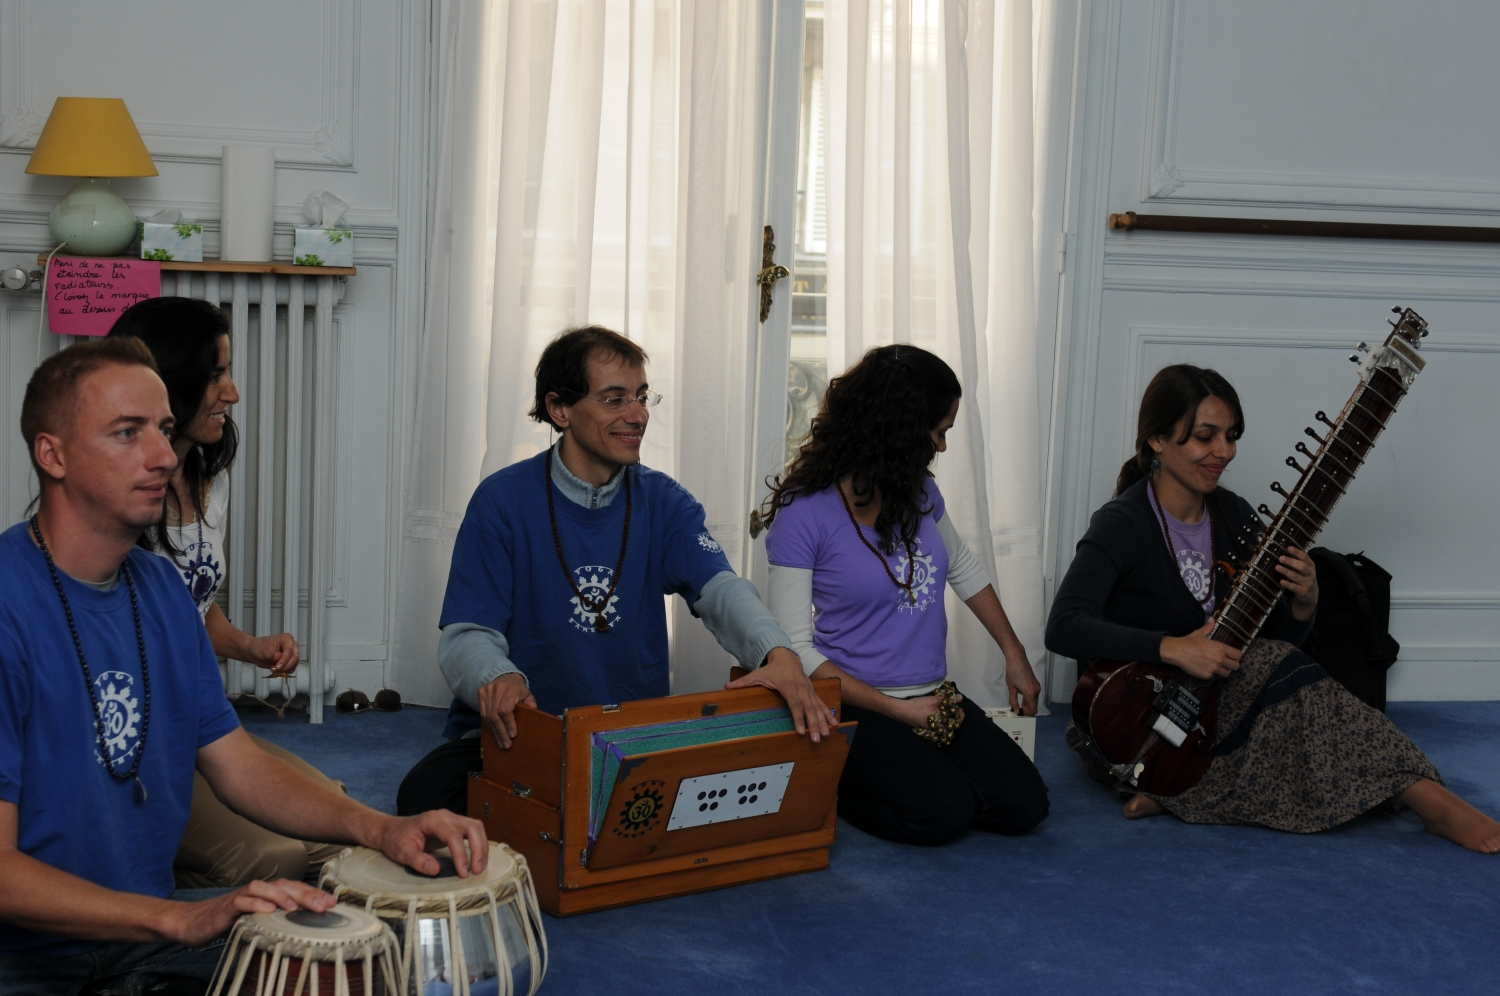 Meeting of H.H. Jagat Guru Amrta Súryánanda Mahá Rája with Master Eva Ruchpaul - Paris - 2011, May